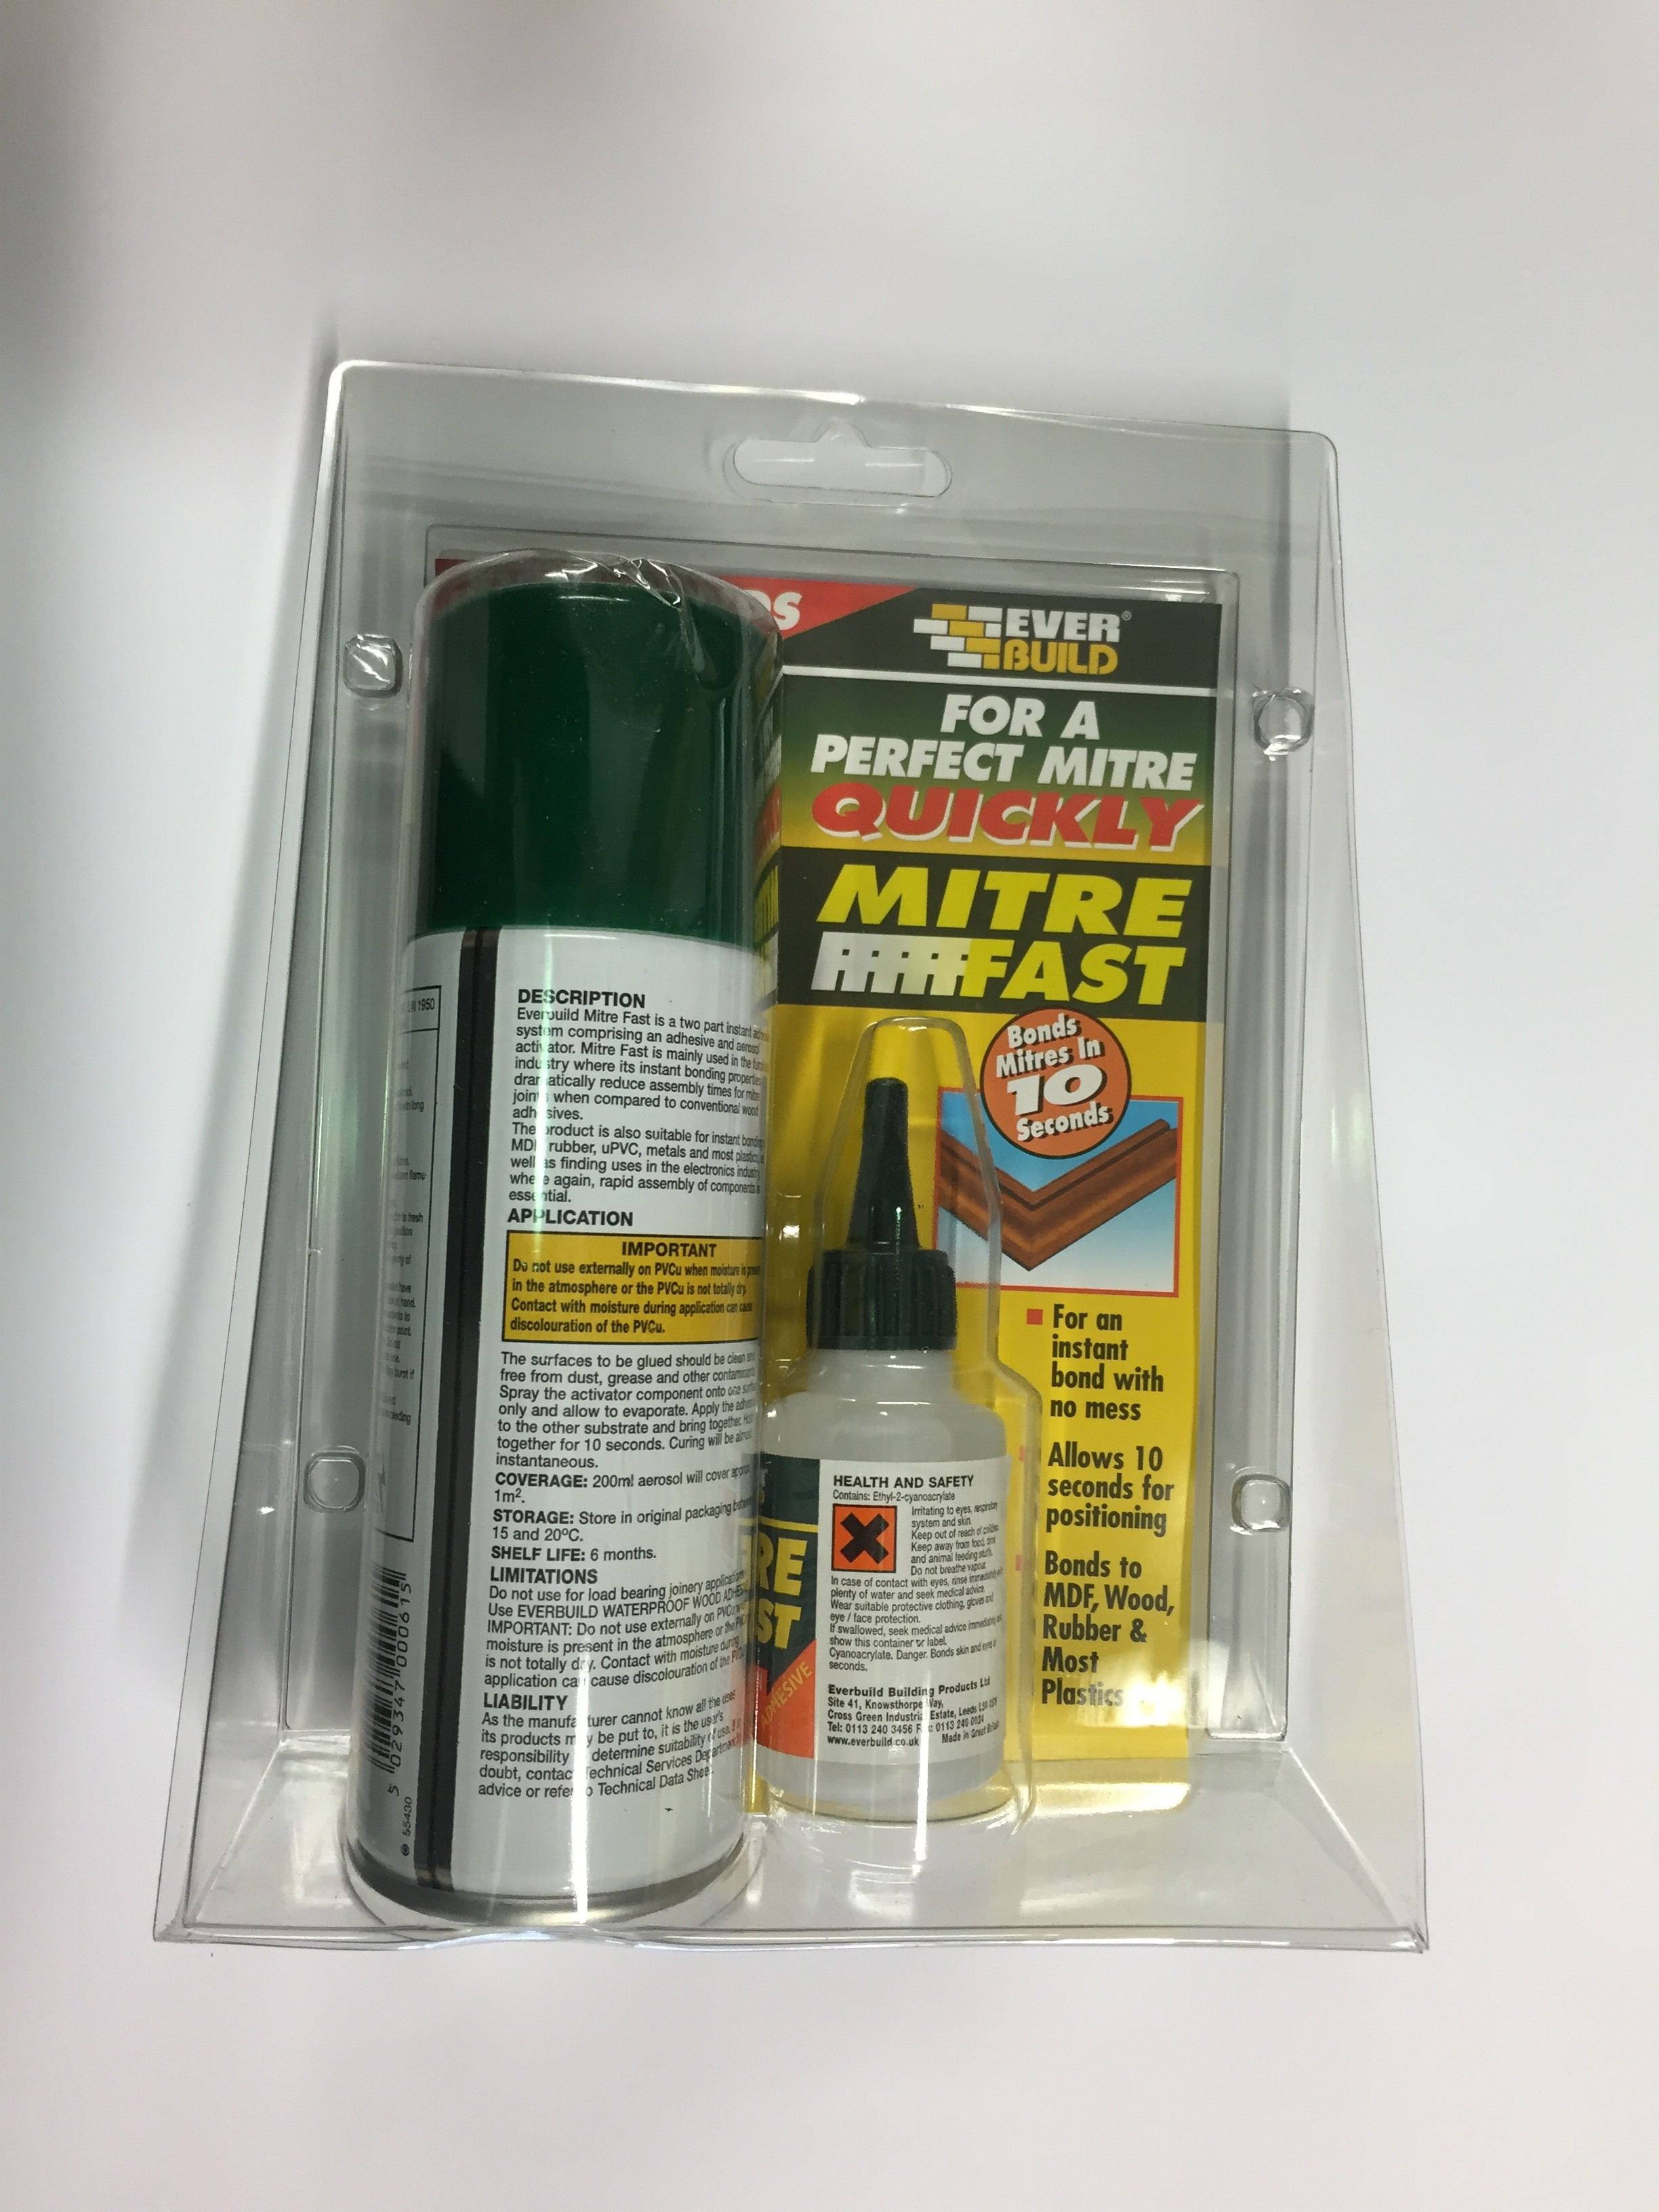 Image of a Mitre fast kit